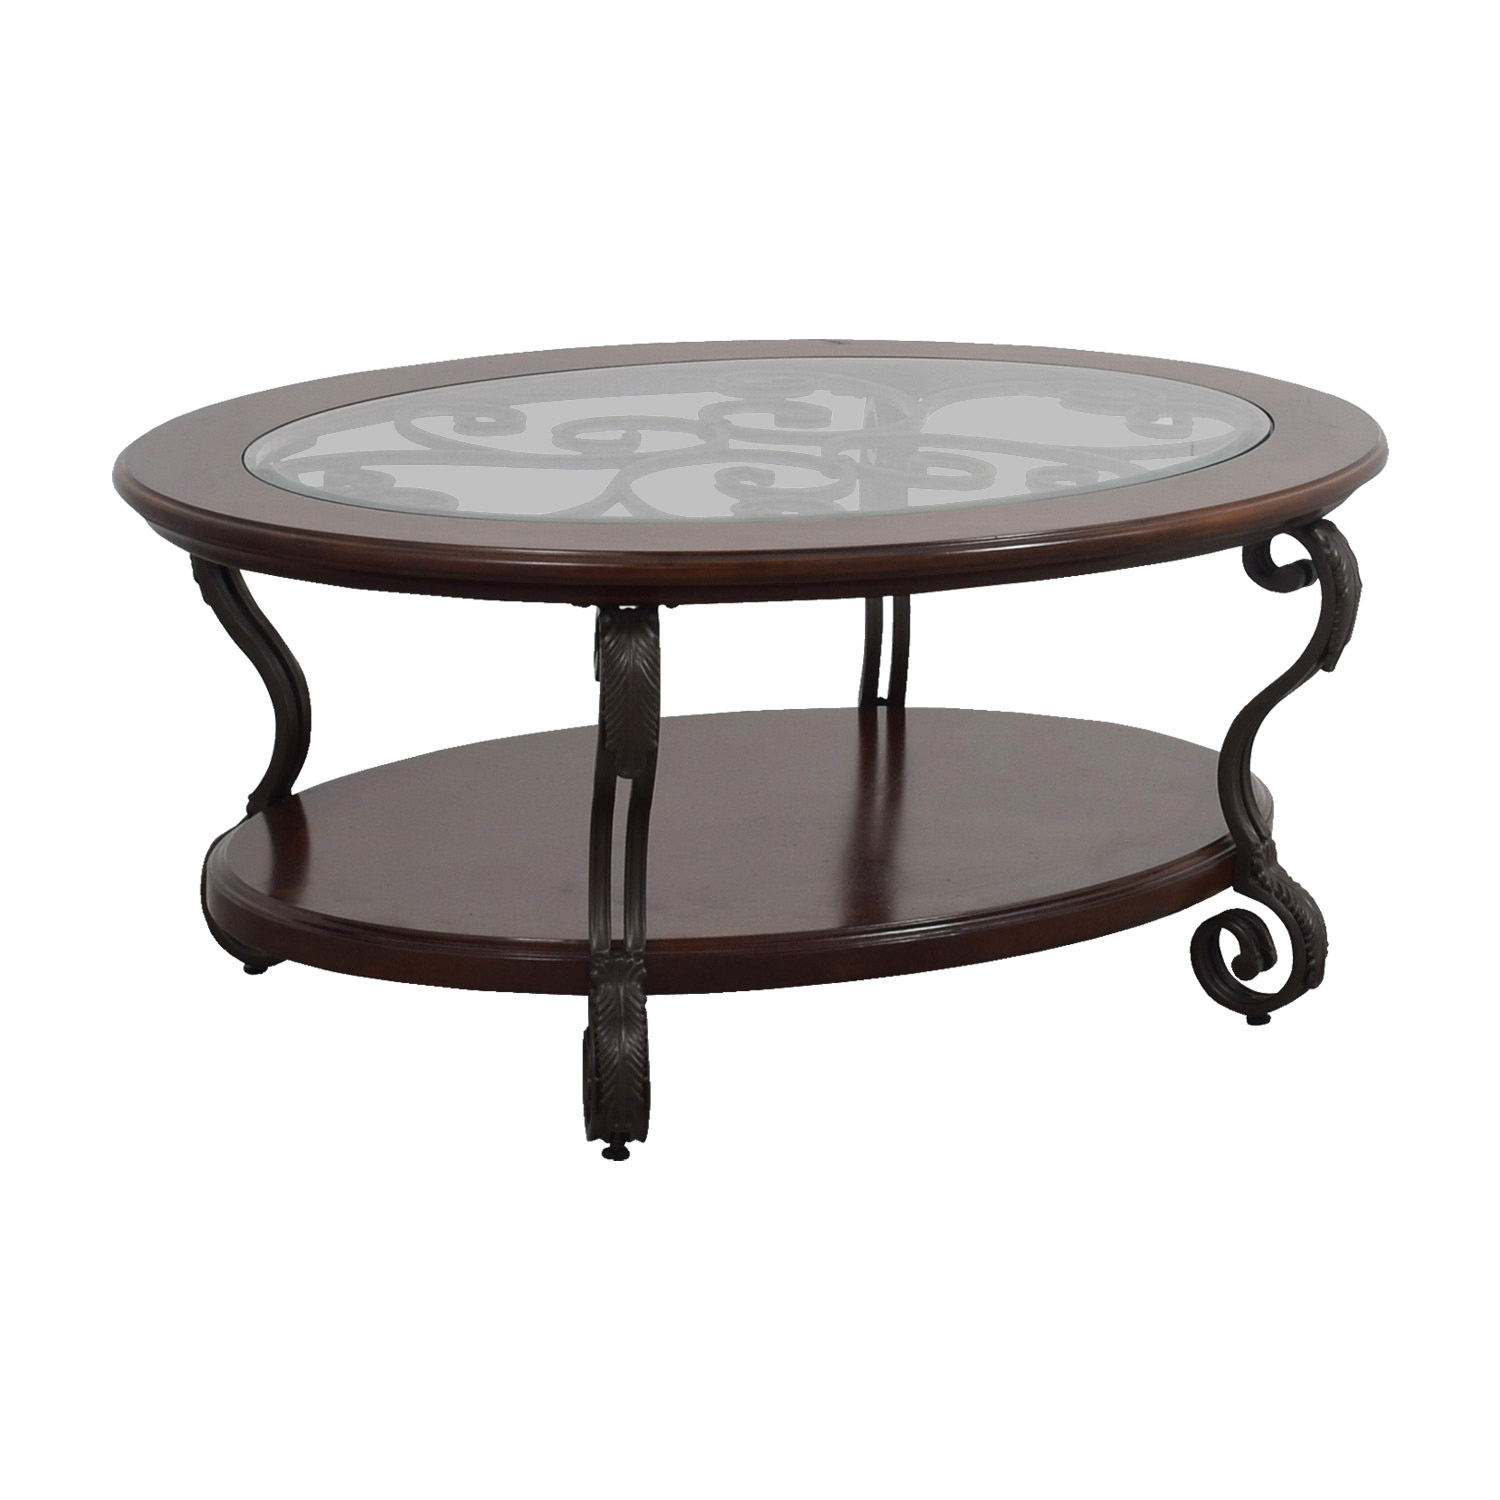 90 Off Ashley Furniture Ashley Furniture Oval Glass Wood And Metal Scroll Coffee Table Tables